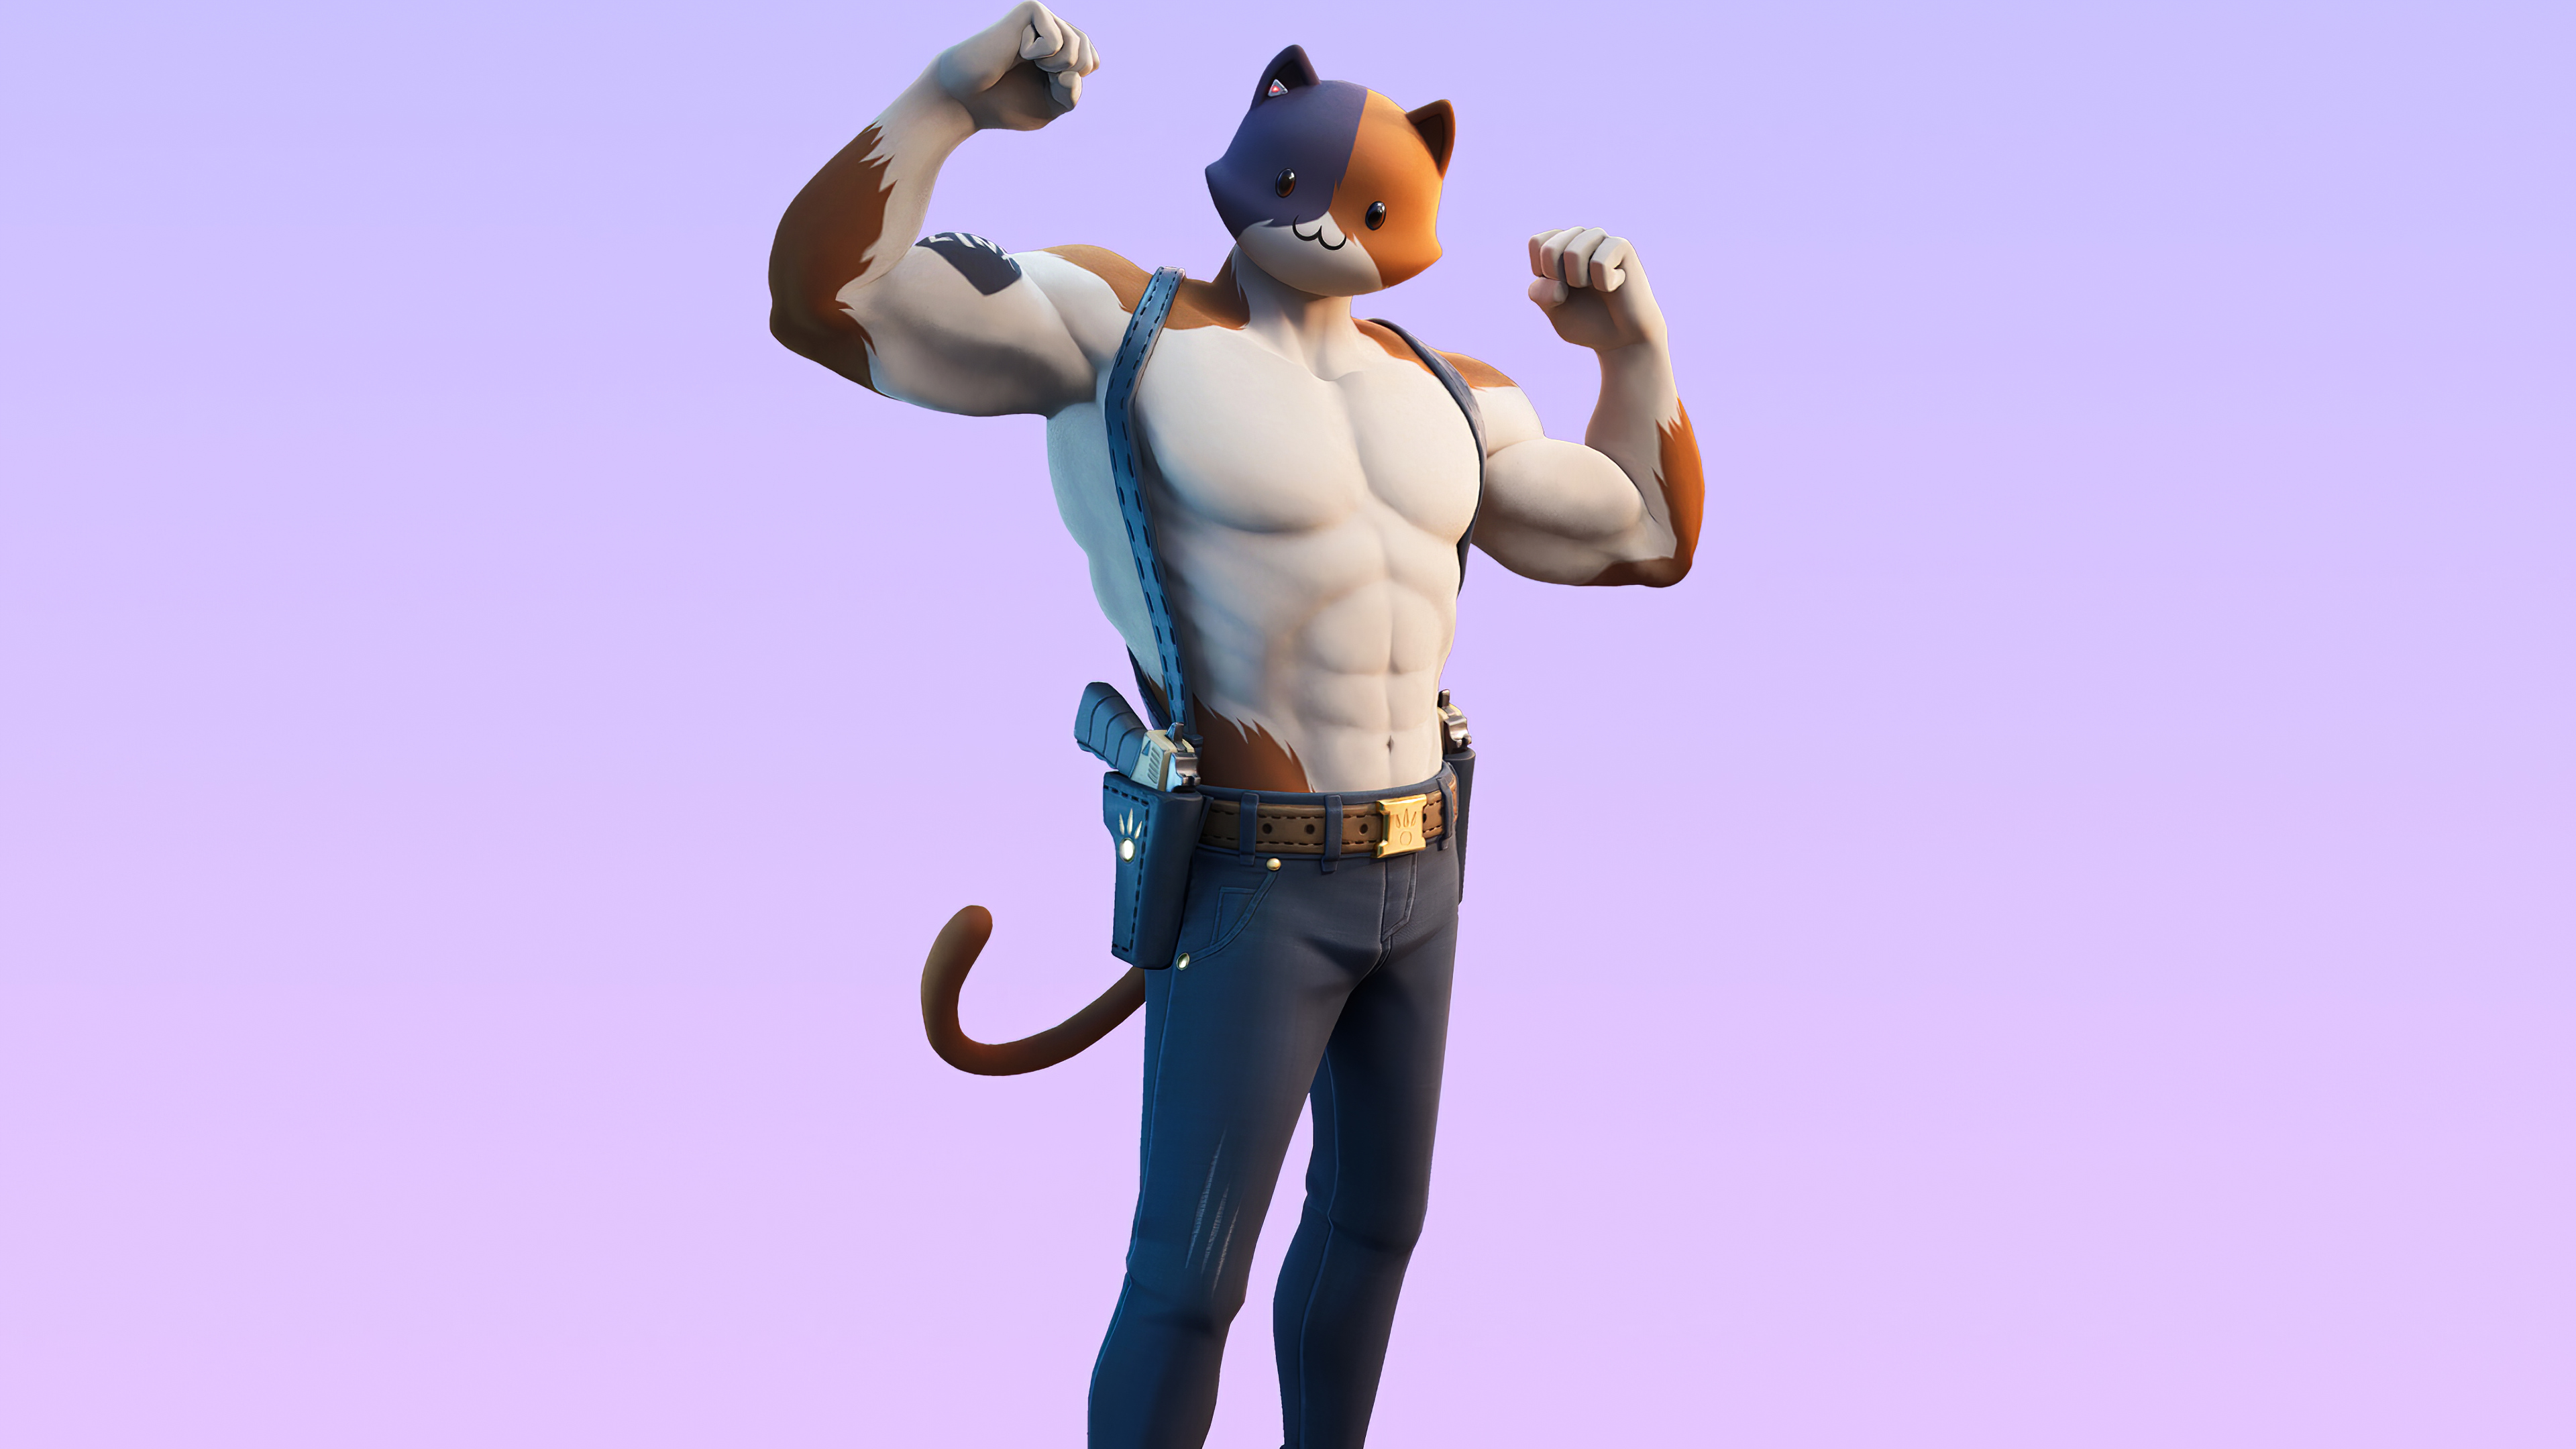 1024x768 Fortnite Meowscles Skin Outfit 4k 1024x768 Resolution Wallpaper Hd Games 4k Wallpapers Images Photos And Background